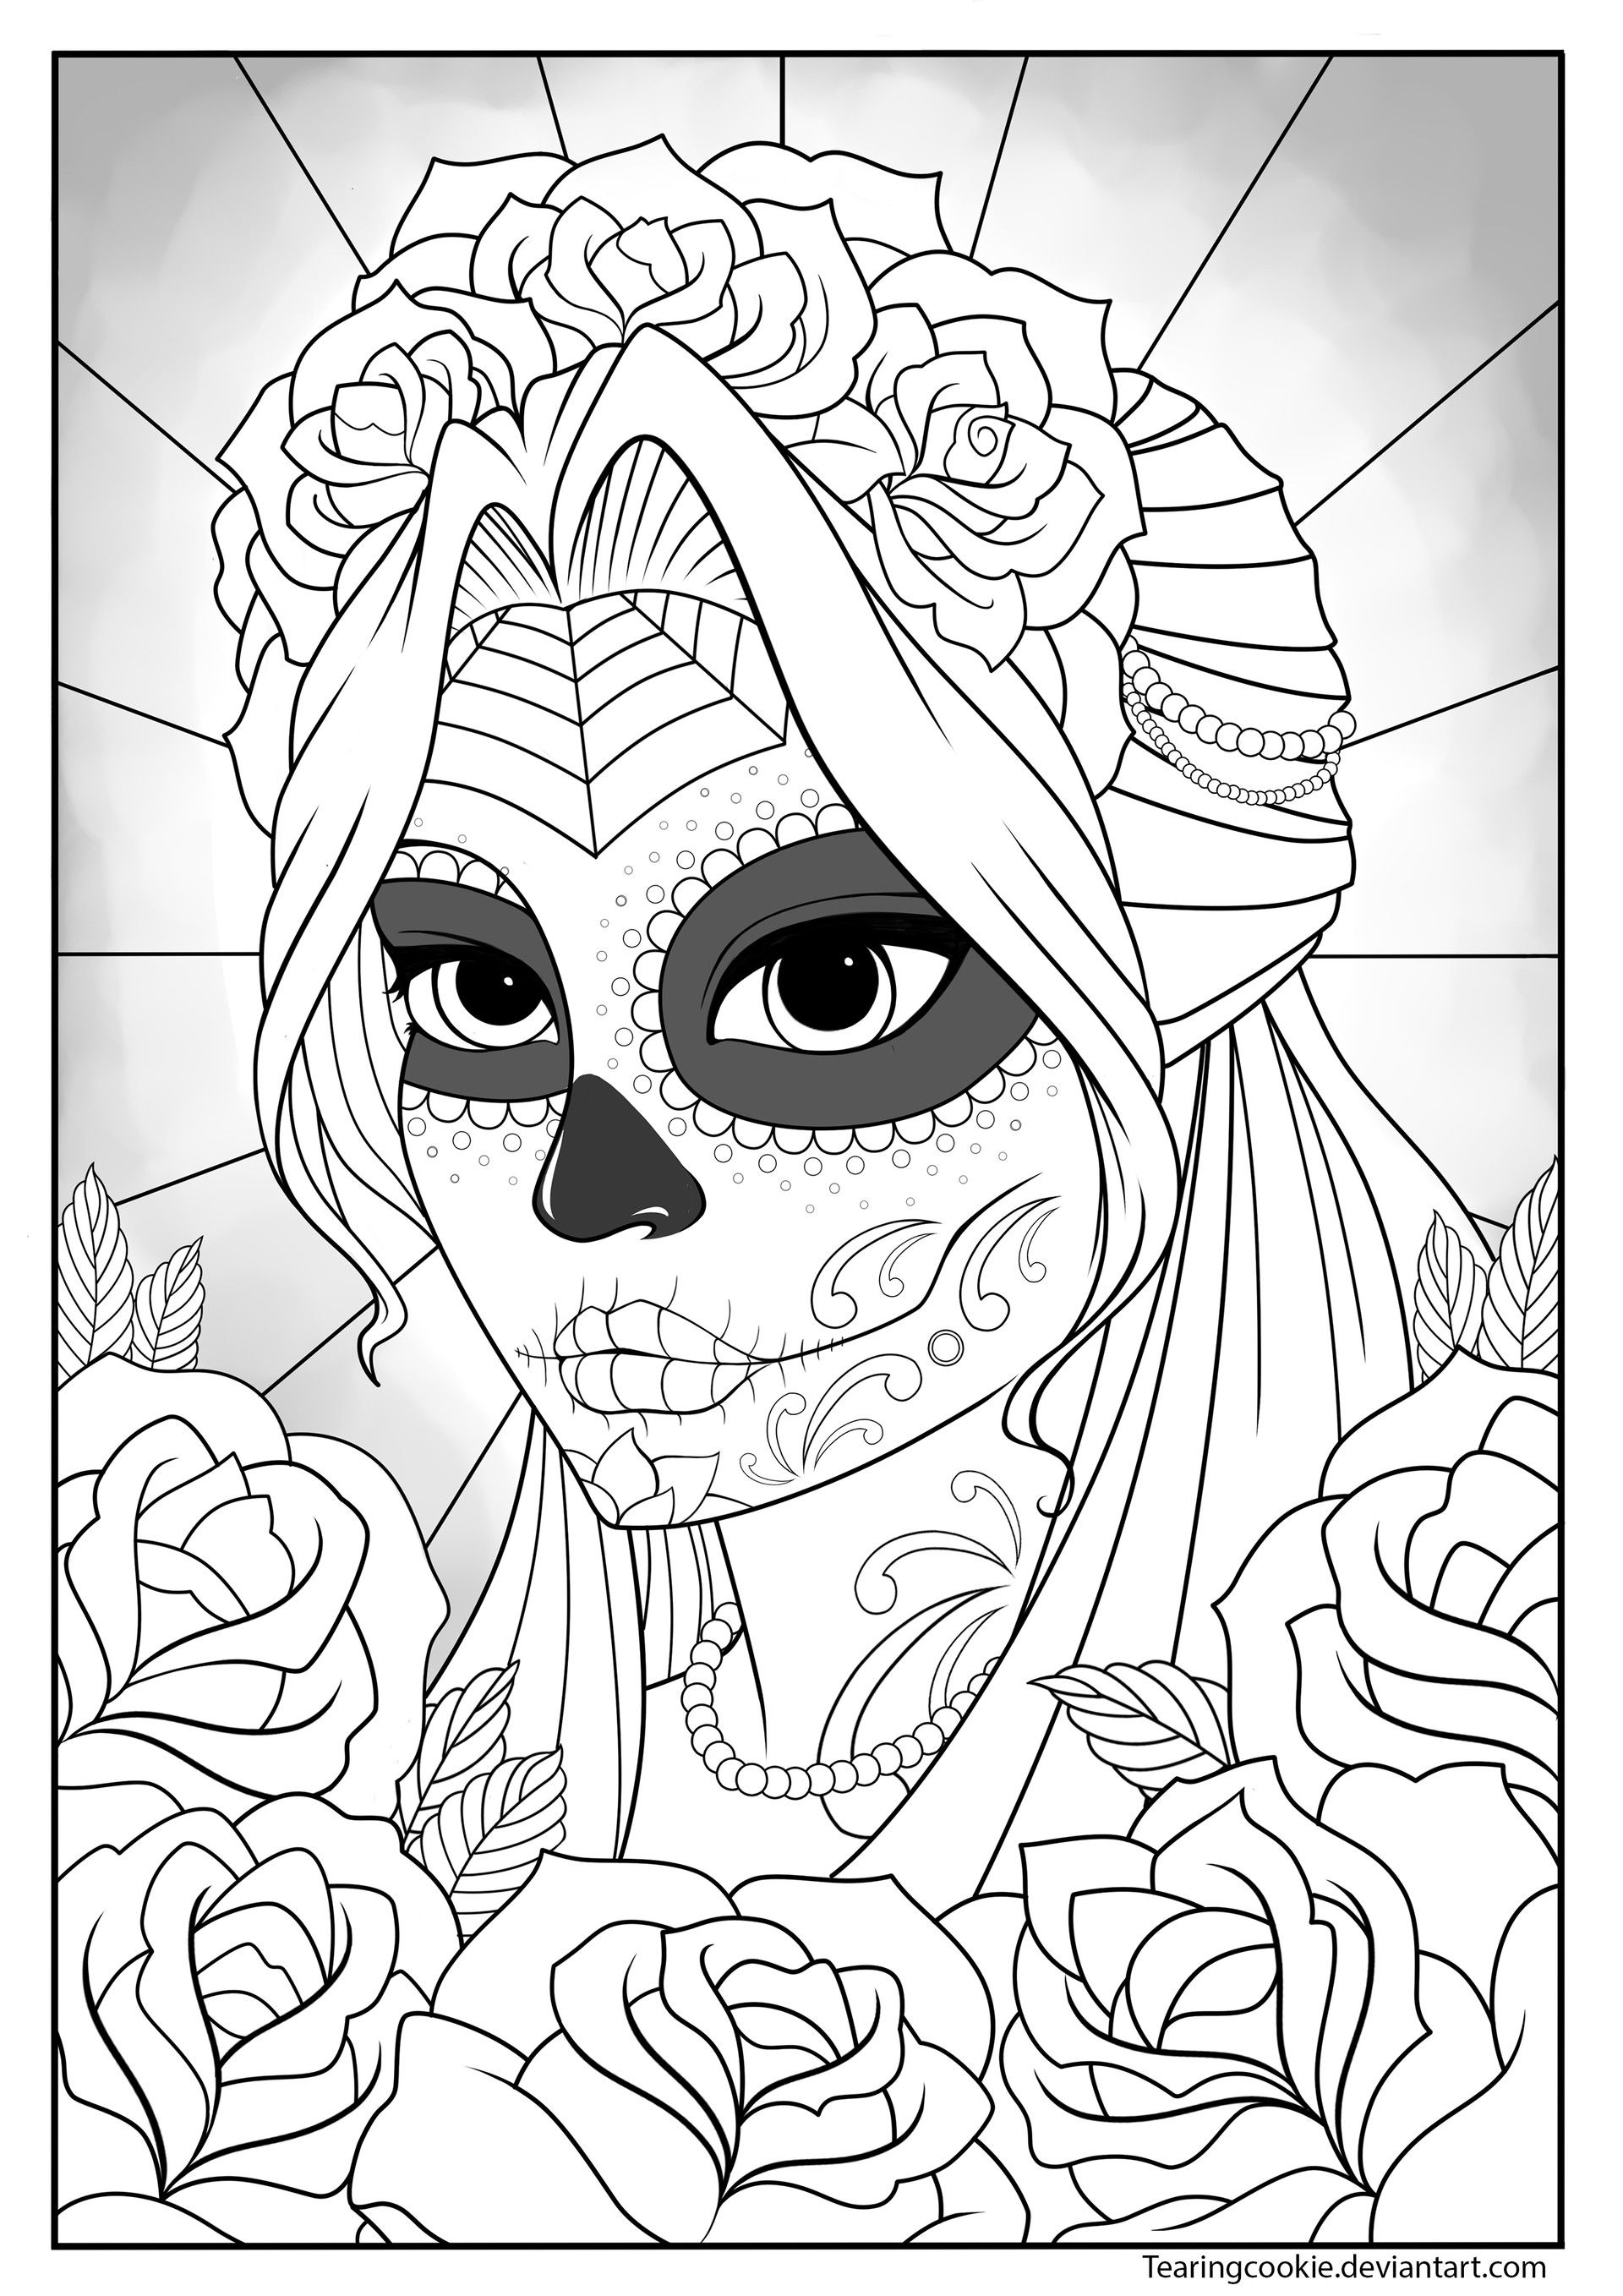 1920x2716 Artstation Skull Coloring Pages Coloring Pages For